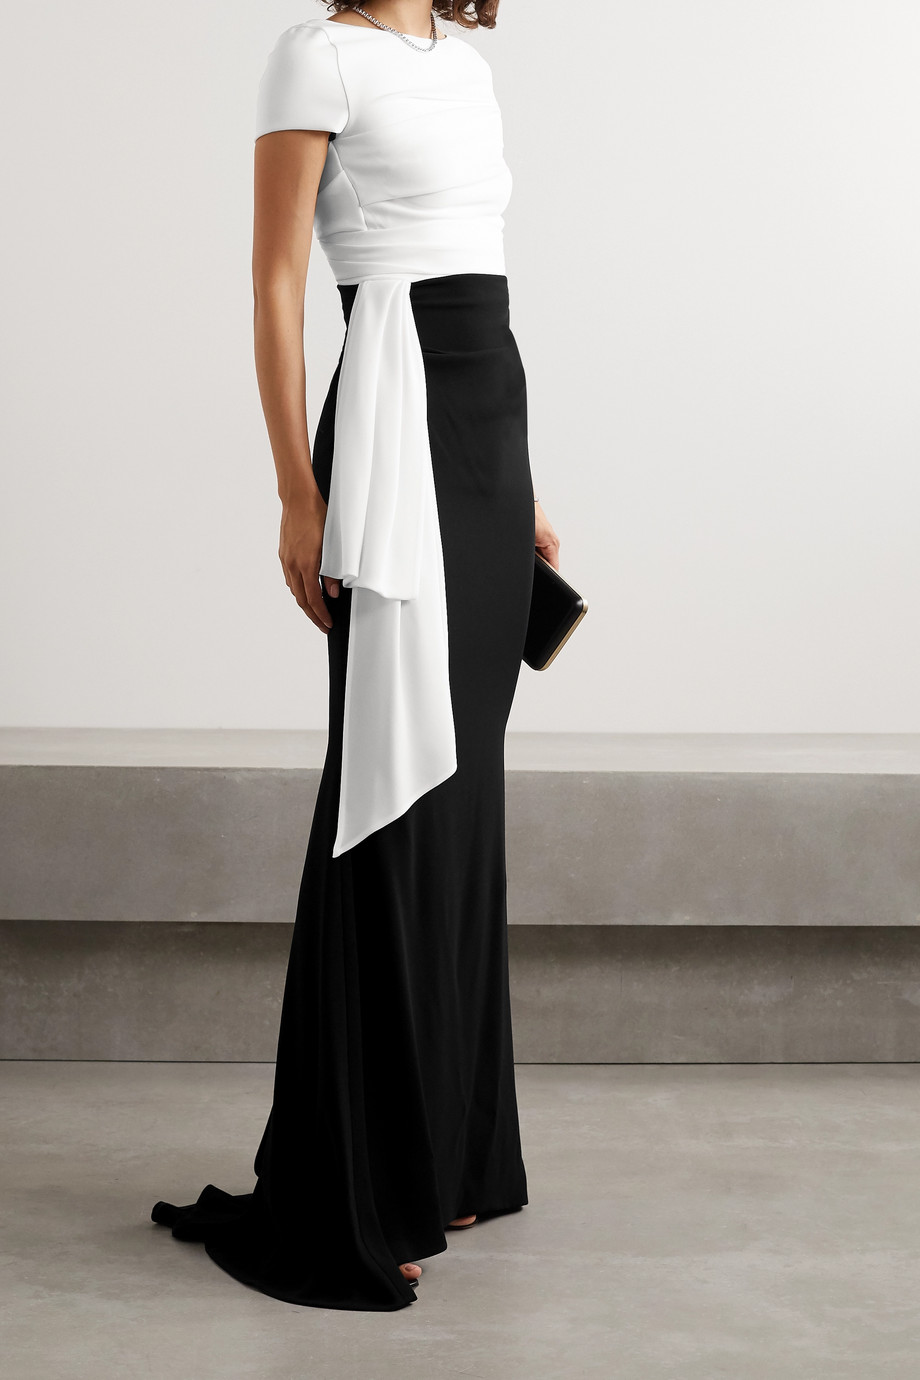 Talbot Runhof Bouvier two-tone draped crepe gown